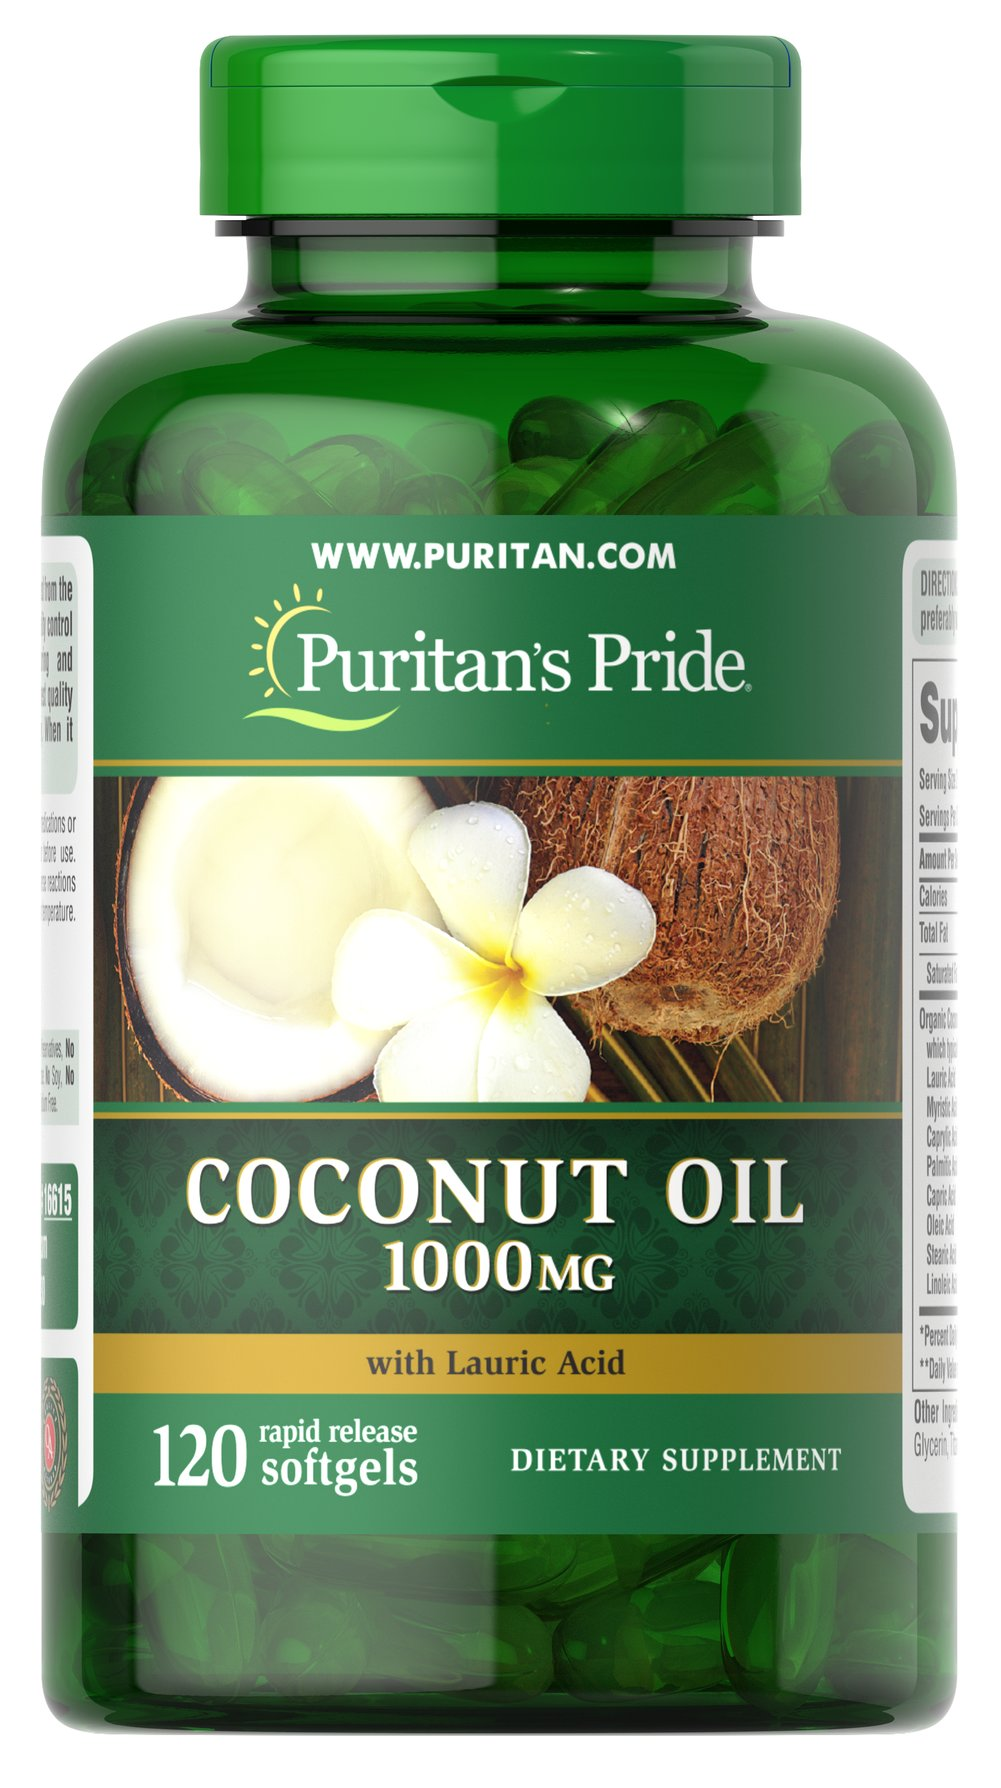 Coconut Oil 1000 mg  120 Rapid Release Softgels 1000 mg $18.69